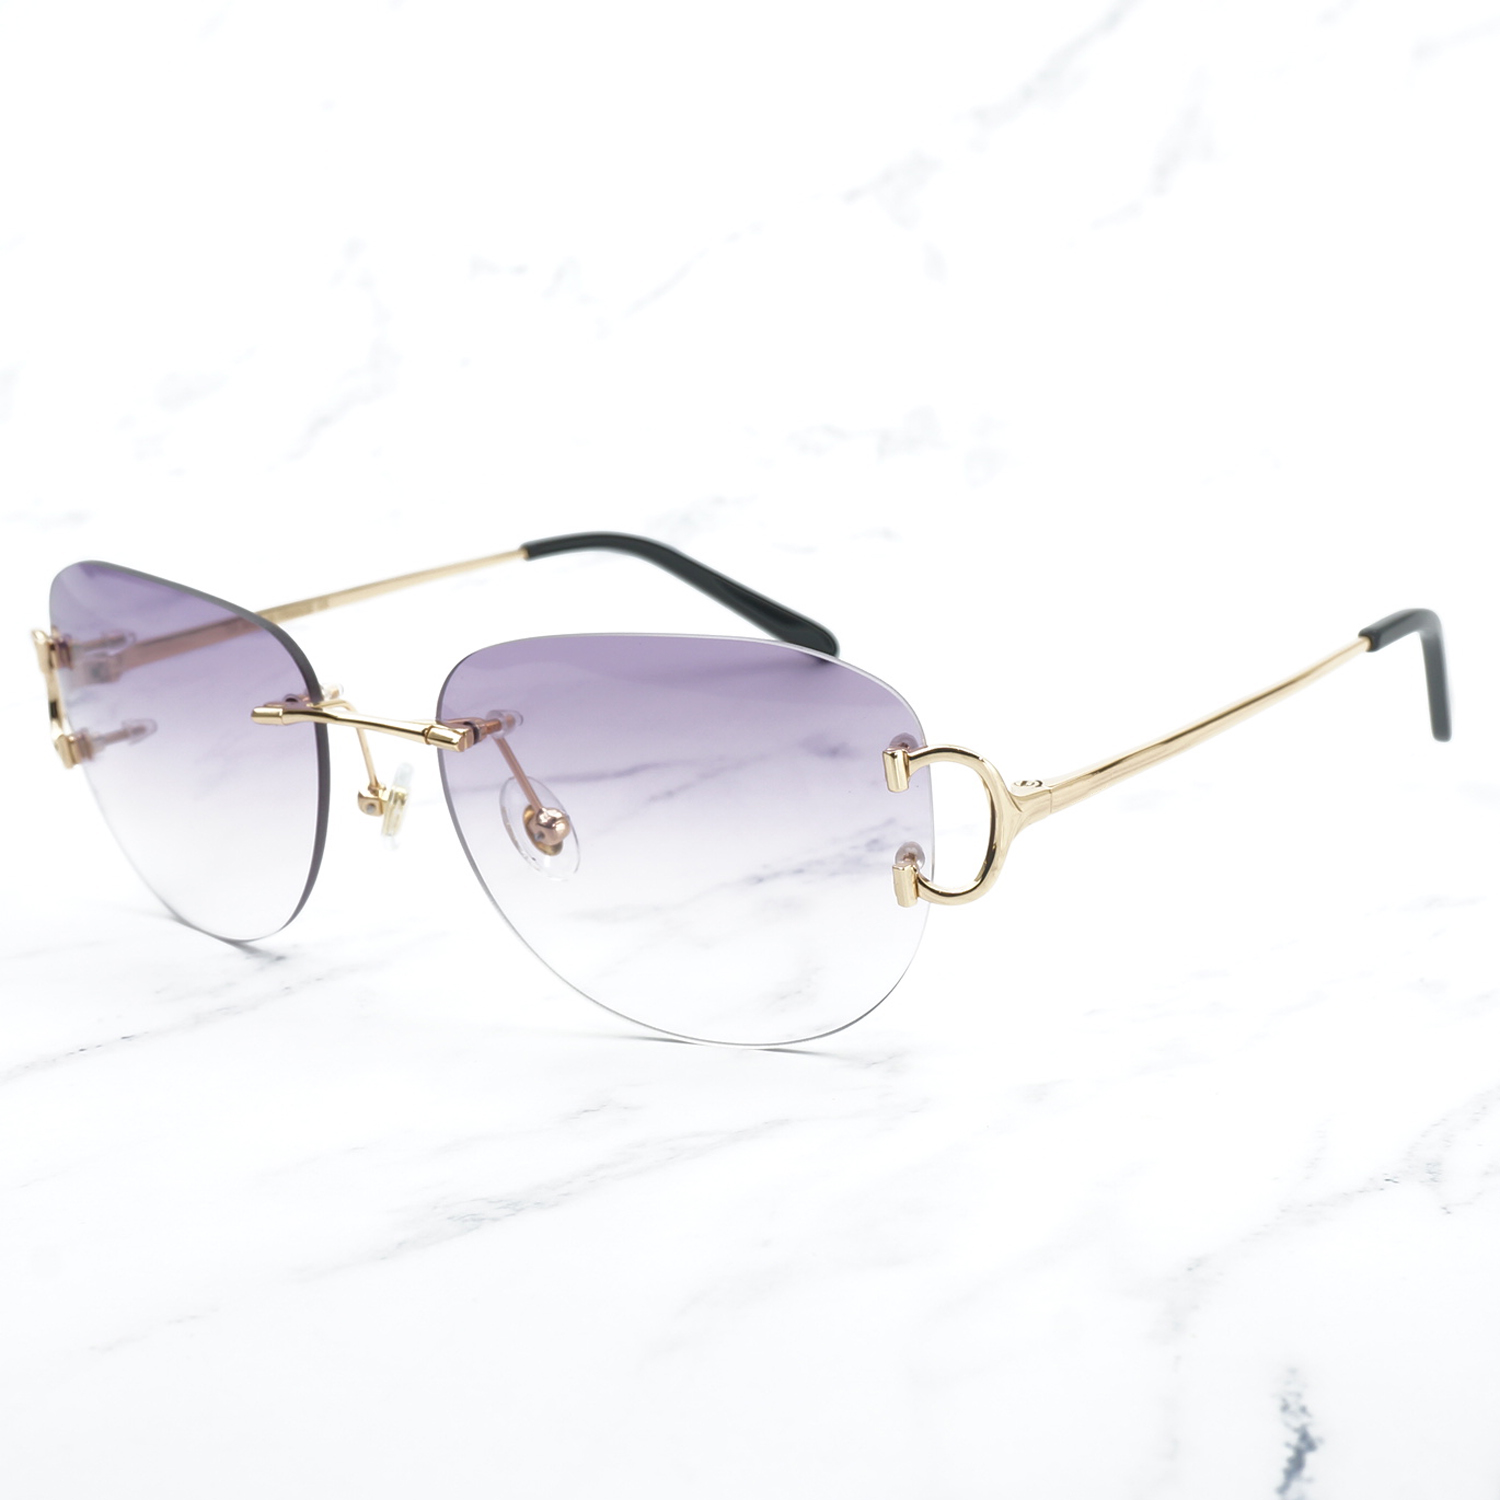 Vintage Pilot Sunglasses for Men Retro Carter Glasses Frame for Women A3 Wholesale Men Sunglass Promotion Female Glass Shades-in Women's Sunglasses from Apparel Accessories